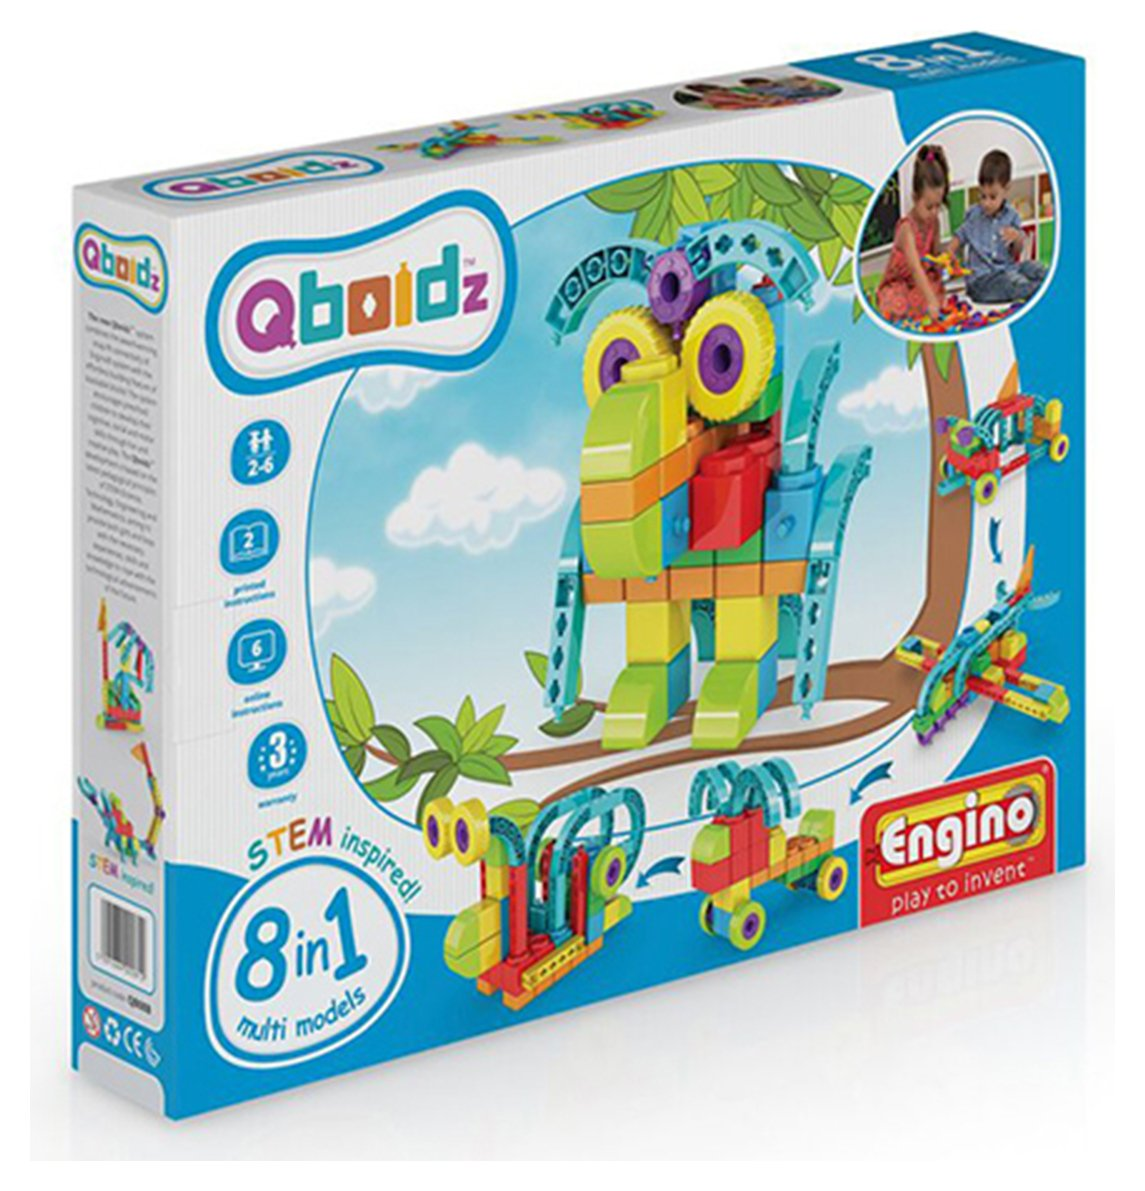 engino-qboidz-8-in-1-owl-multi-model-set